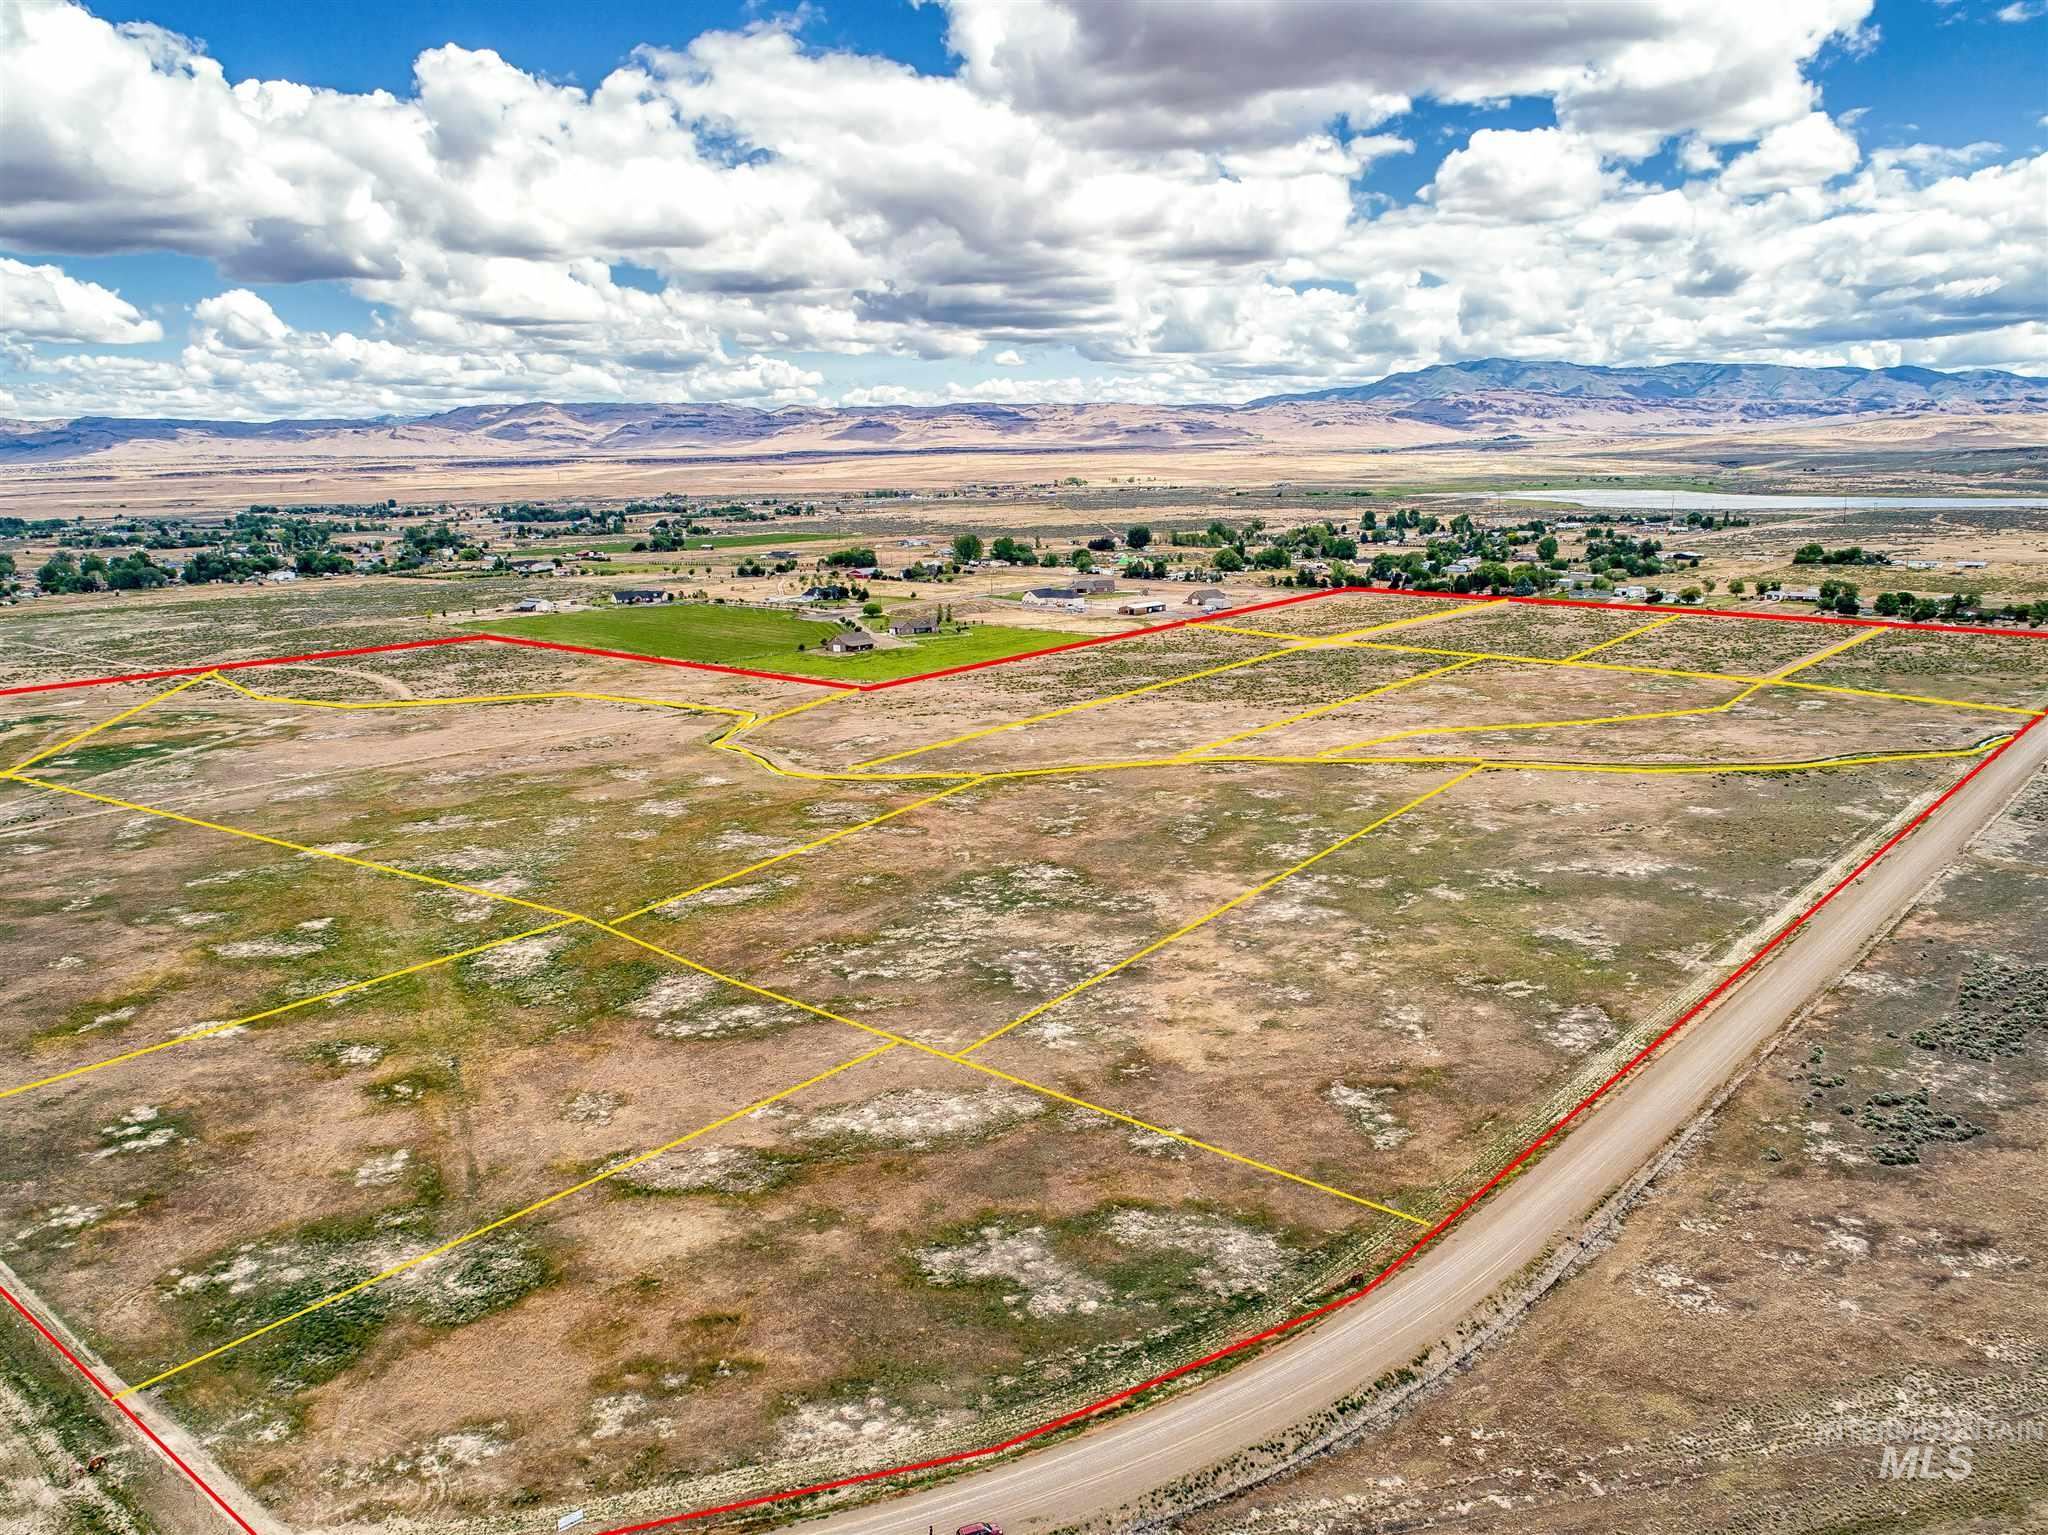 TBD 1500 N 18th E, Mountain Home, Idaho 83647, Land For Sale, Price $750,000, 98767762